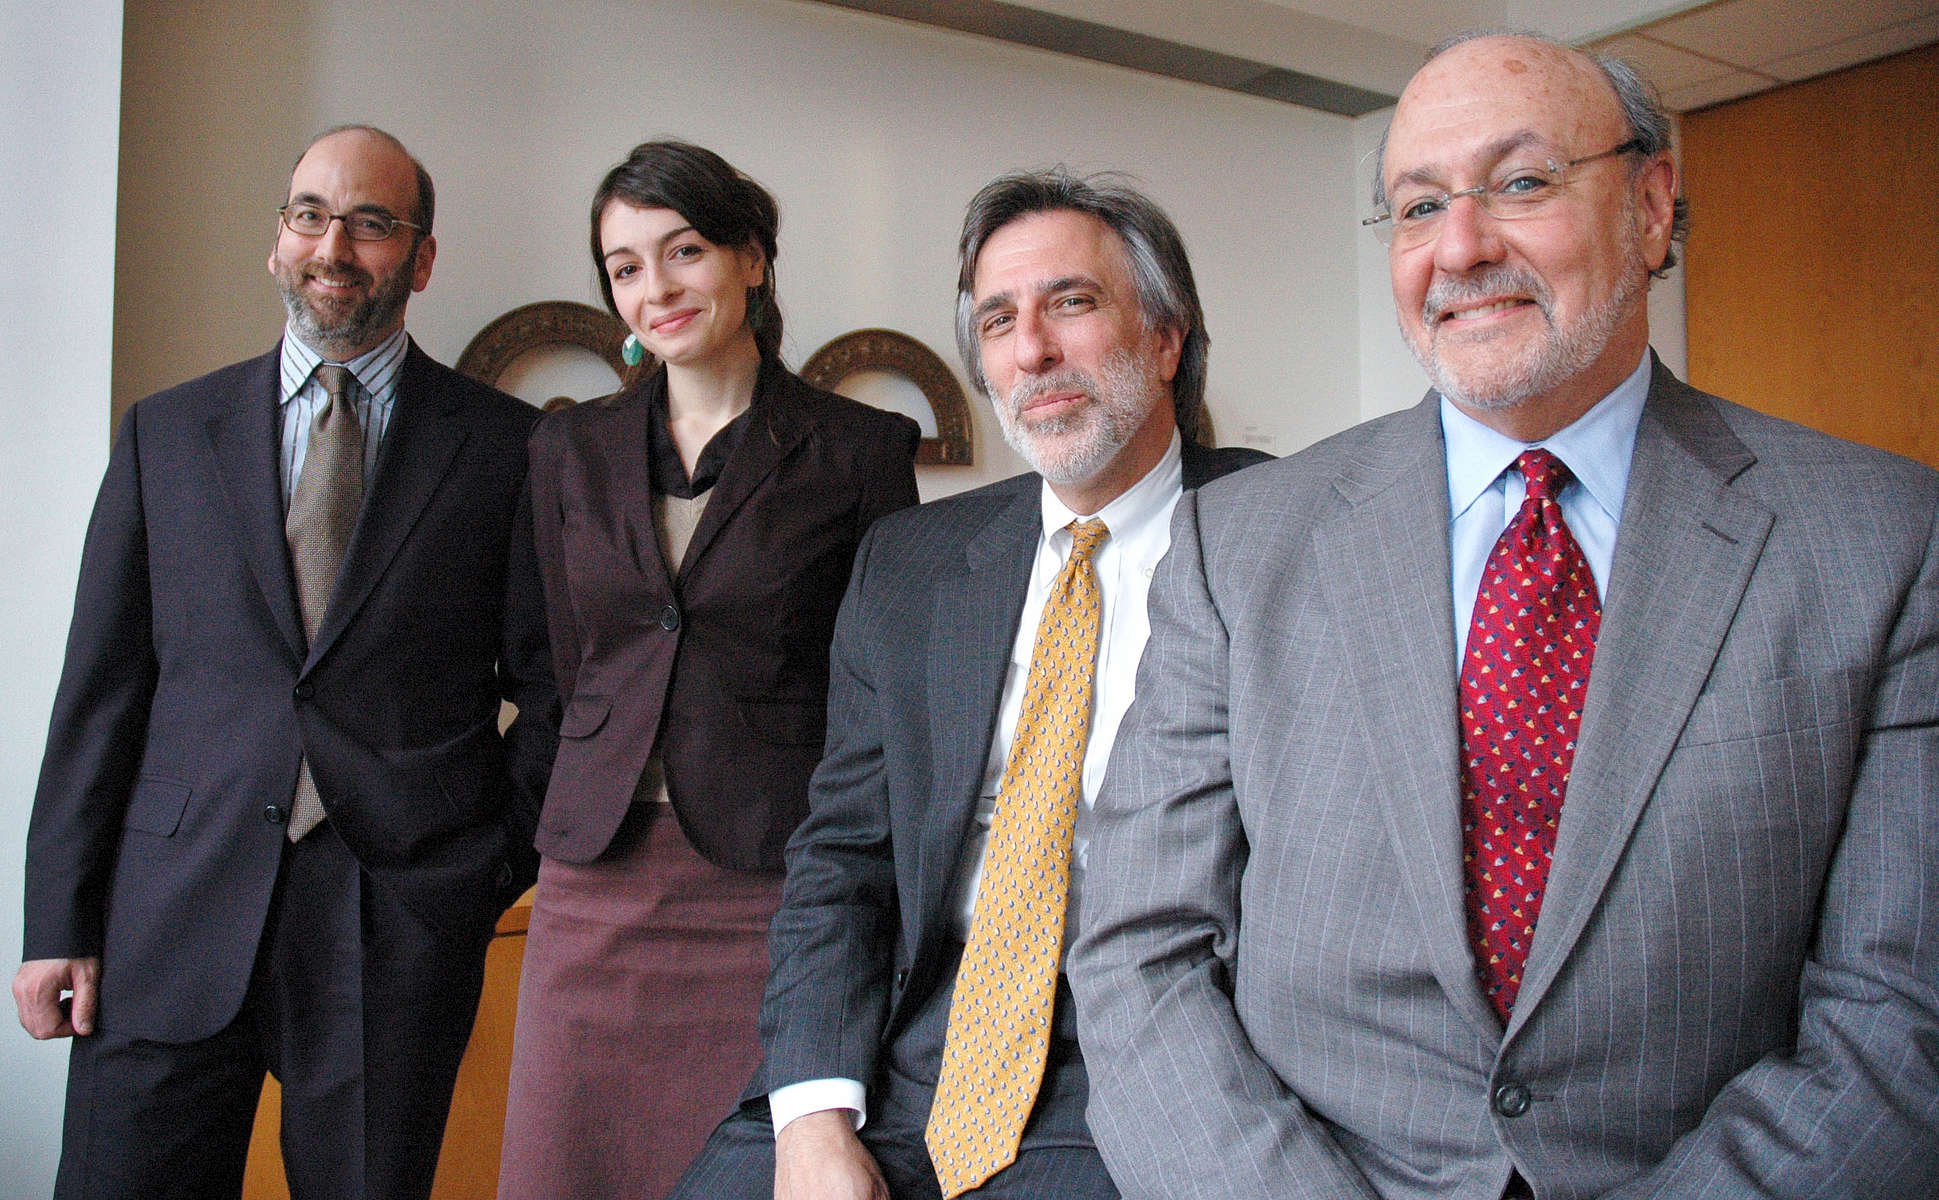 Mitchell Korbey, Jennifer Dickson, Richard Bass, Mark A. Levine - Herrick Feinstein